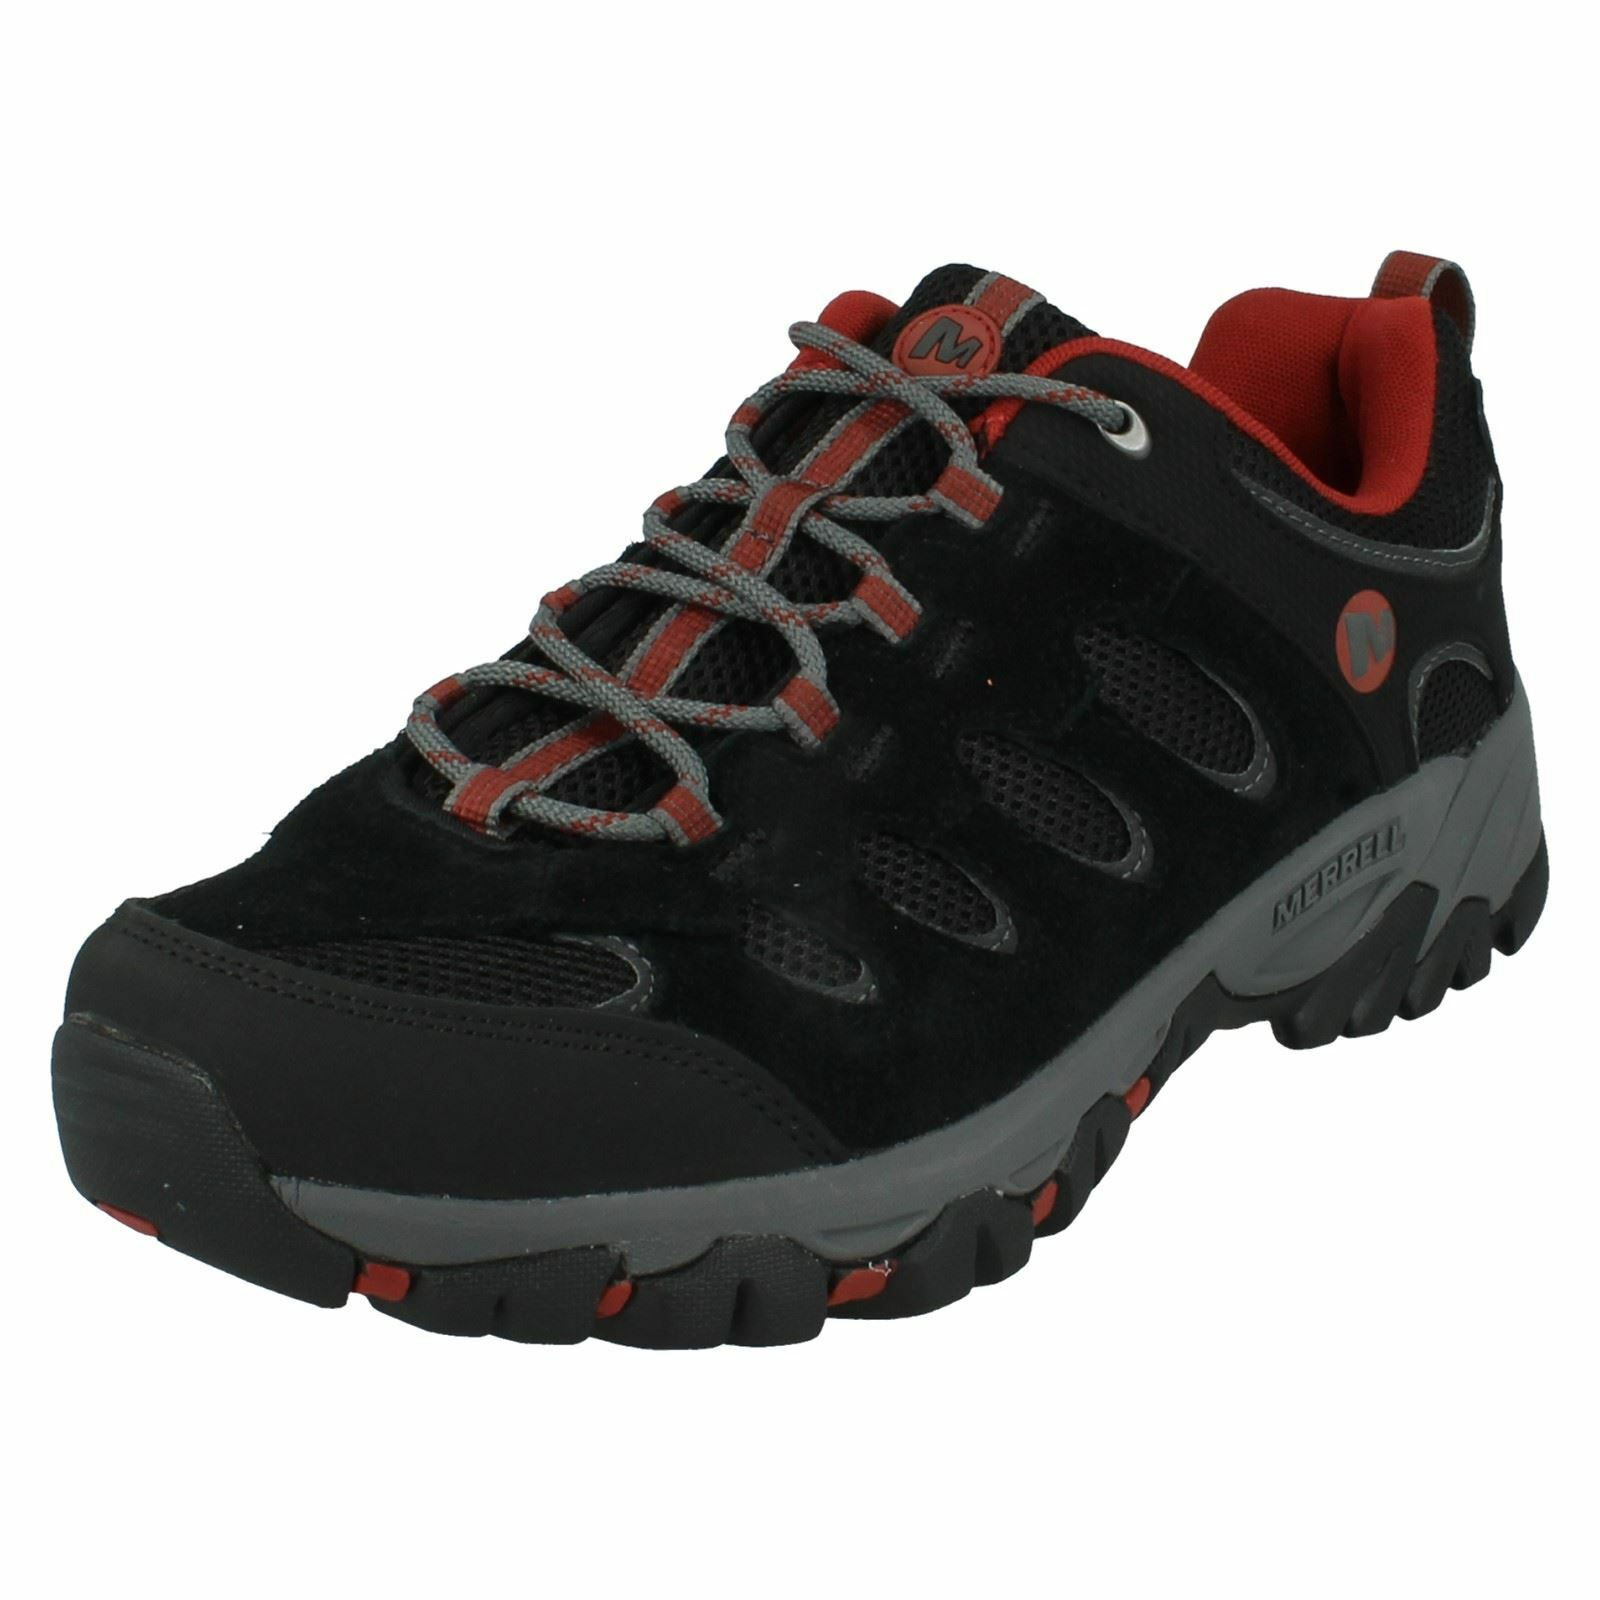 Hombre MERRELL RIDGEPASS LACE WALKING UP SUEDE Negro/RED OUTDOOR WALKING LACE HIKING Zapatos a52717